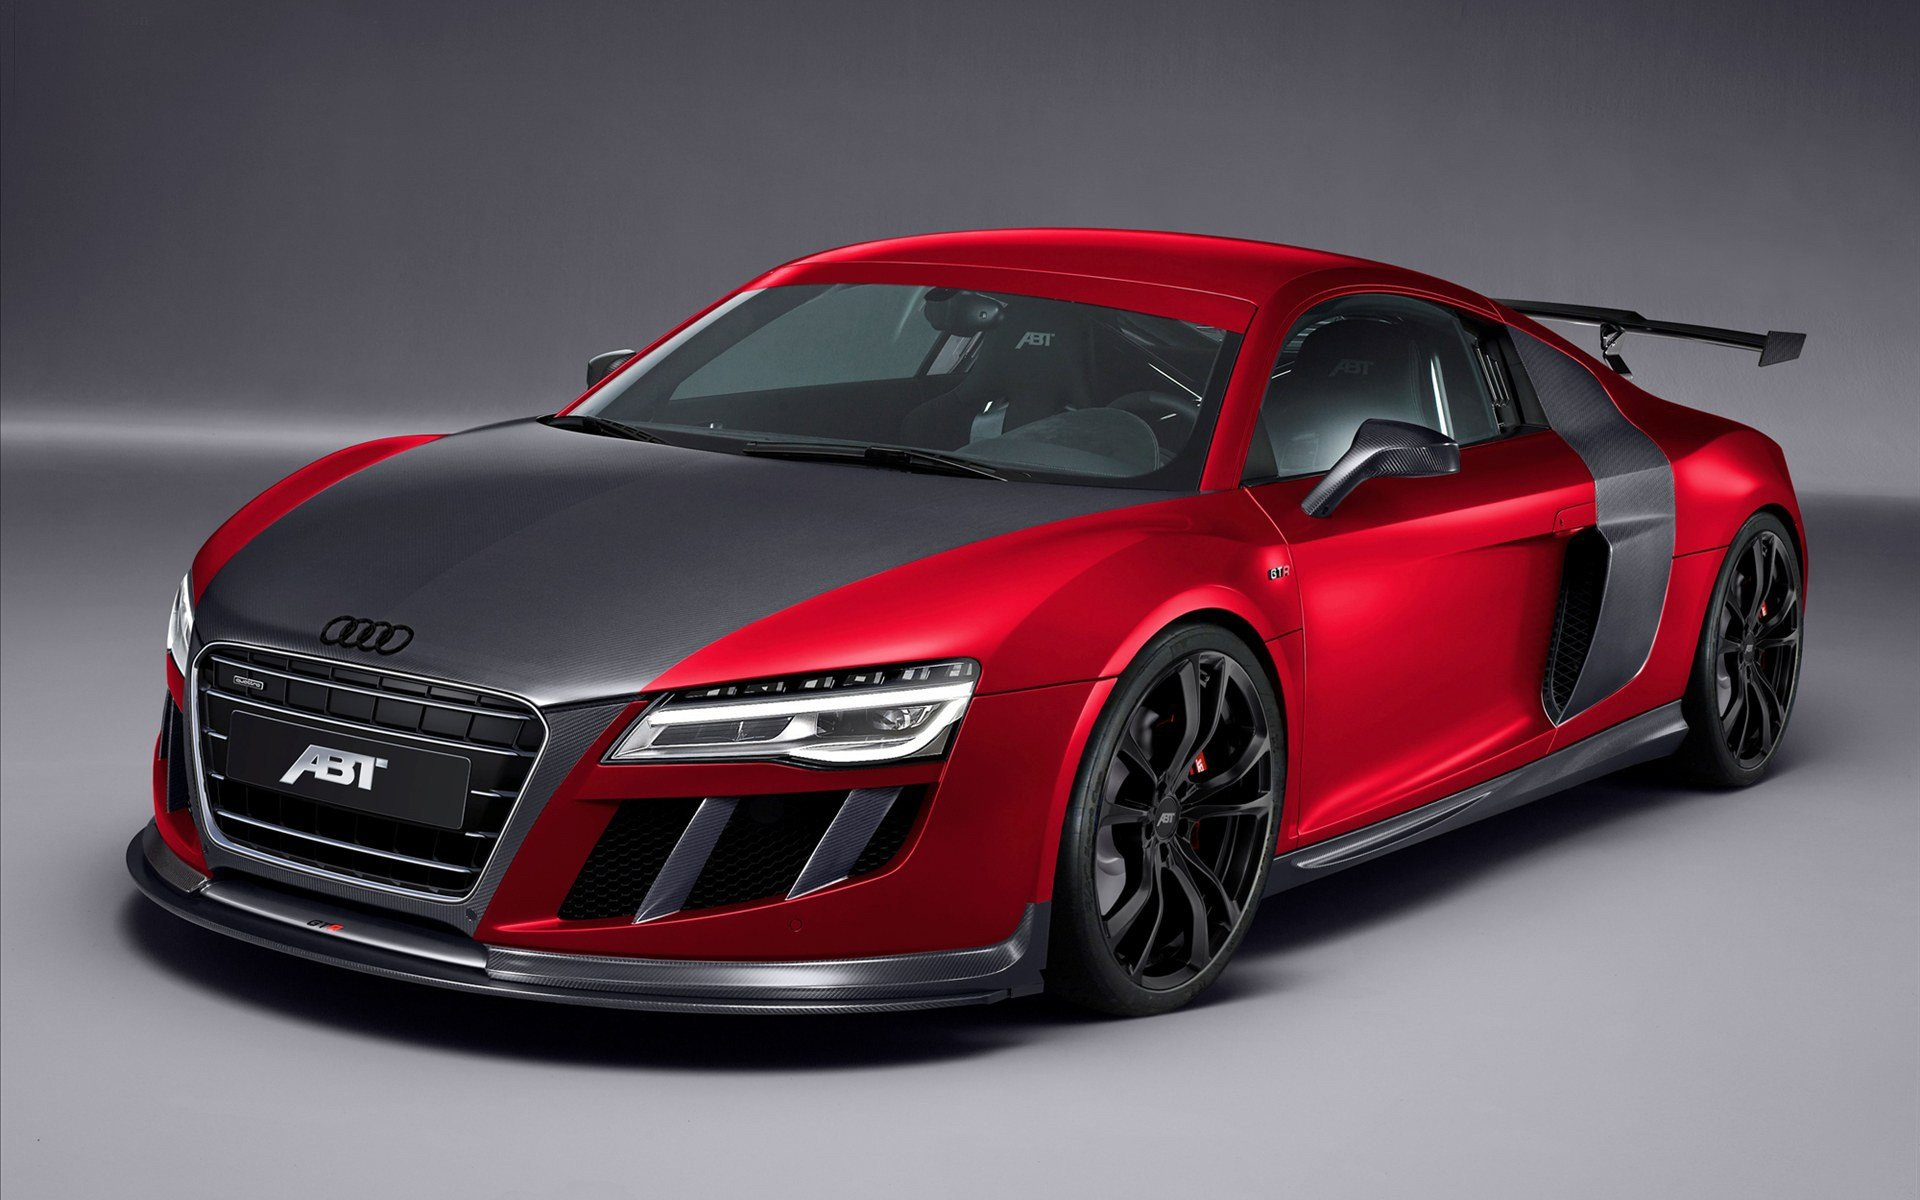 Latest 2013 Abt Audi R8 Gtr Wallpaper Hd Car Wallpapers Id 3306 Free Download